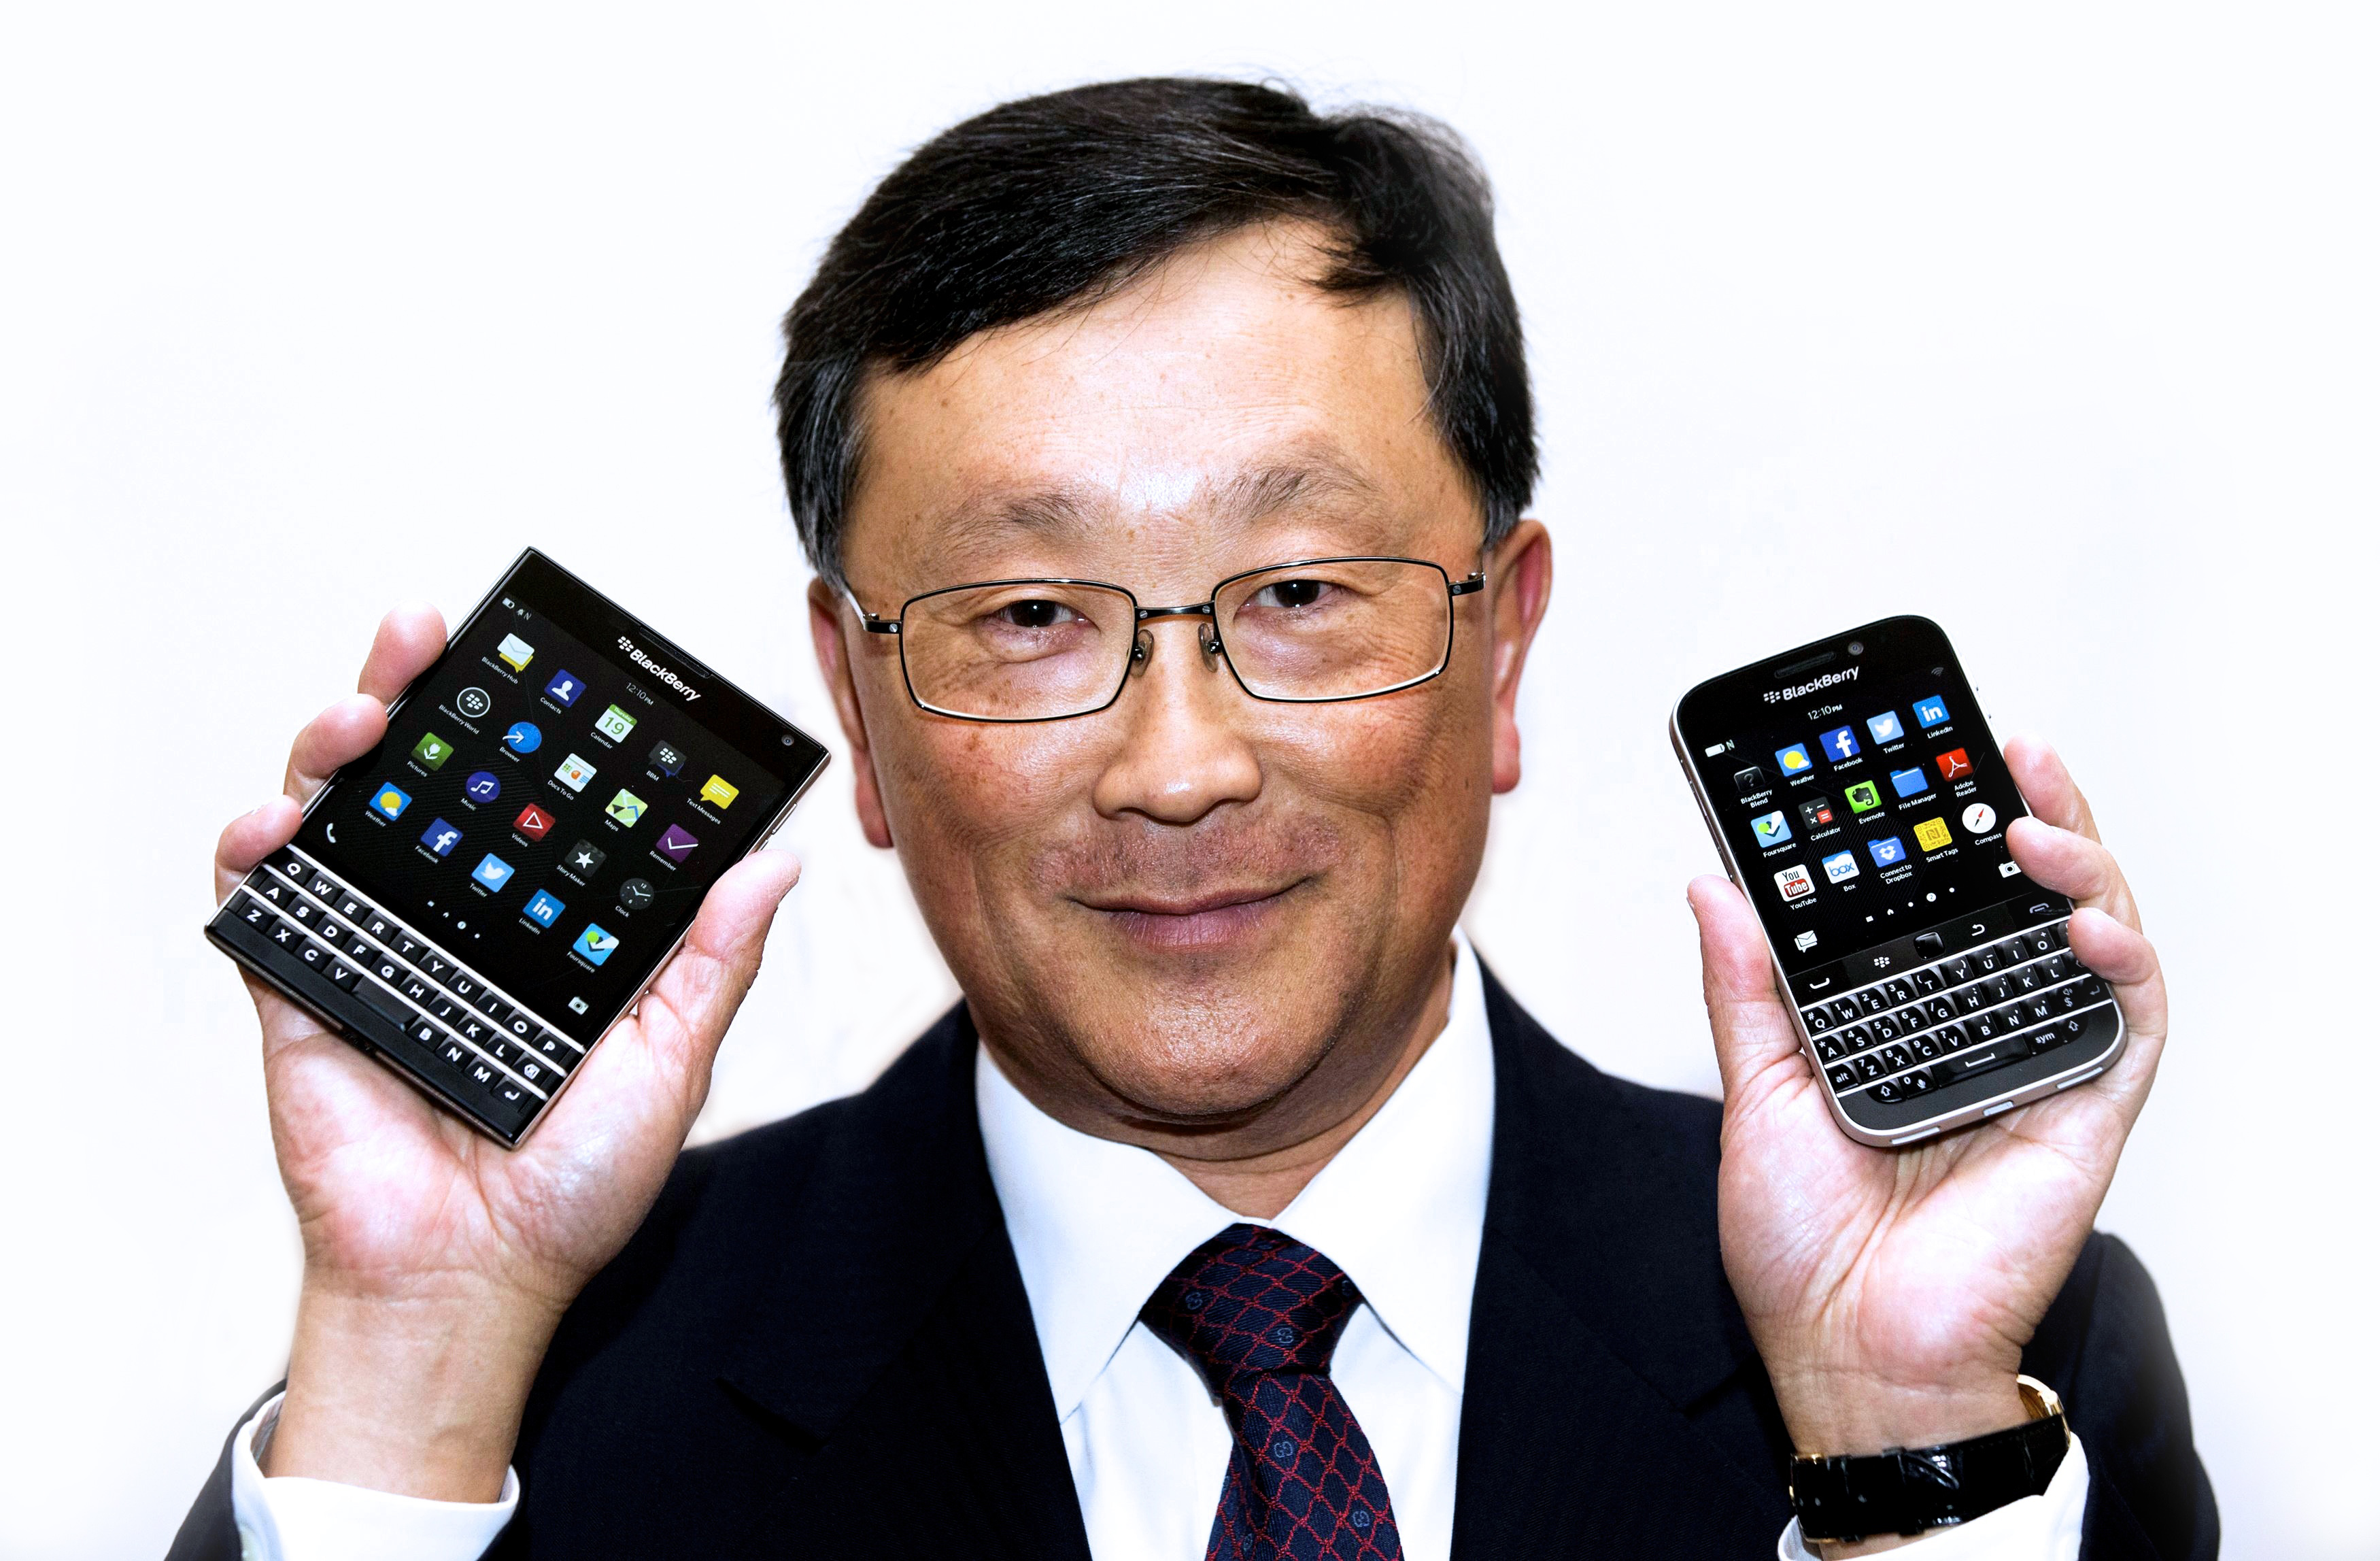 BlackBerry CEO Chen holds up the unreleased Blackberry Passport and Blackberry Classic devices during the company's annual general meeting for shareholders in Toronto